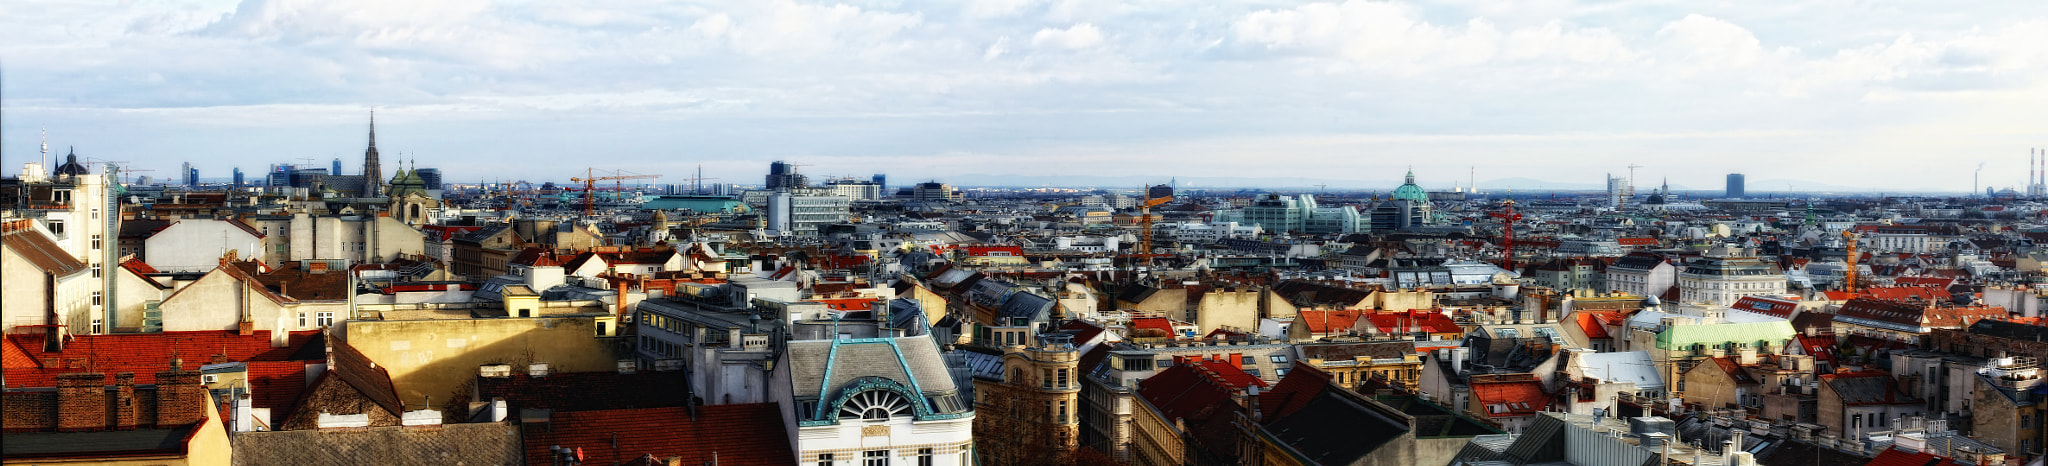 Photograph Rooftops of Vienna by Stefan Steinbauer on 500px